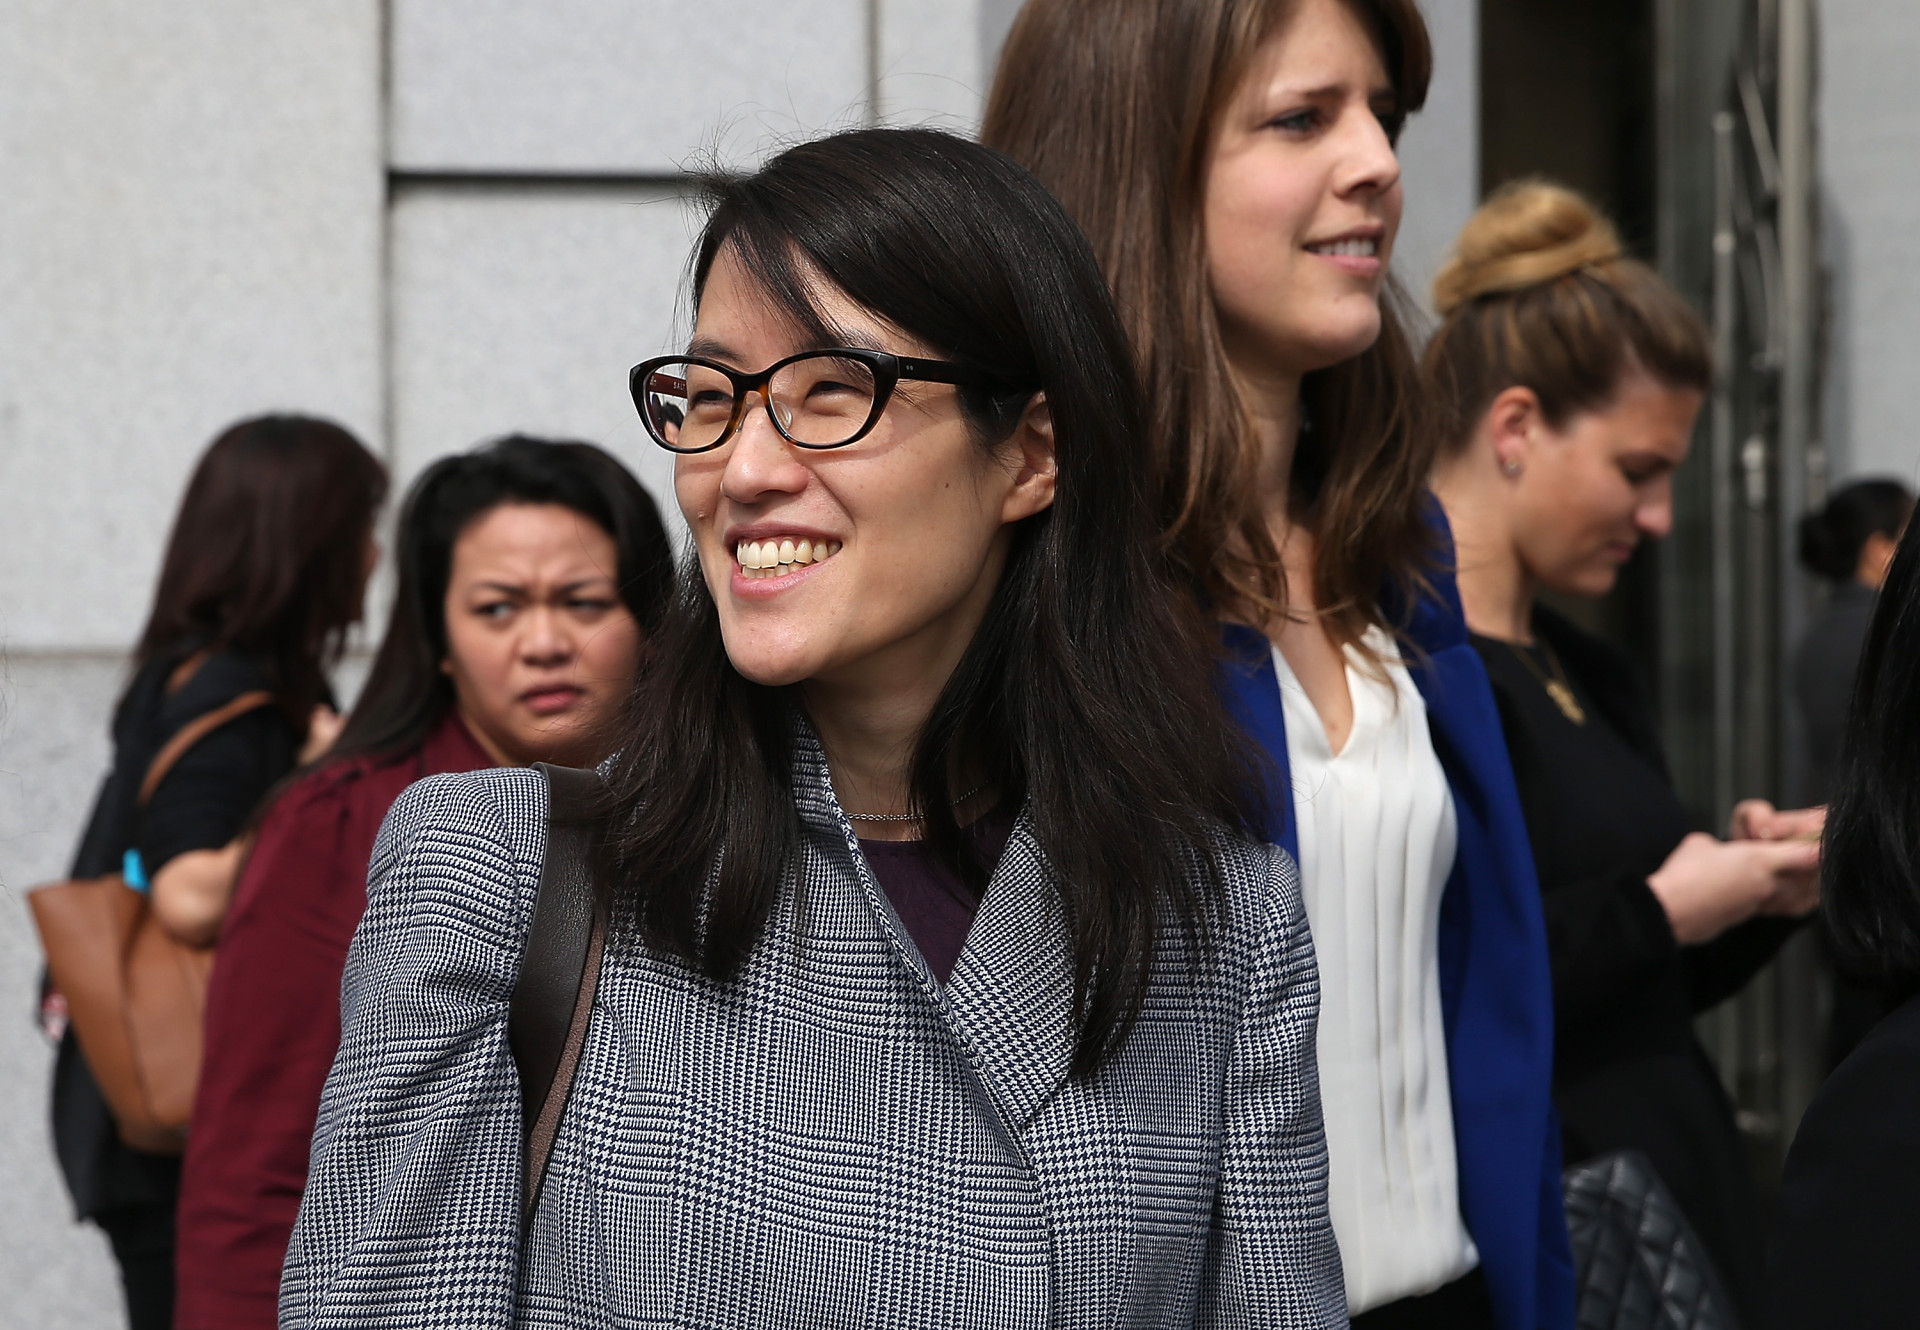 Ellen Pao has decided not to pursue an appeal in her gender discrimination case against Kleiner Perkins.